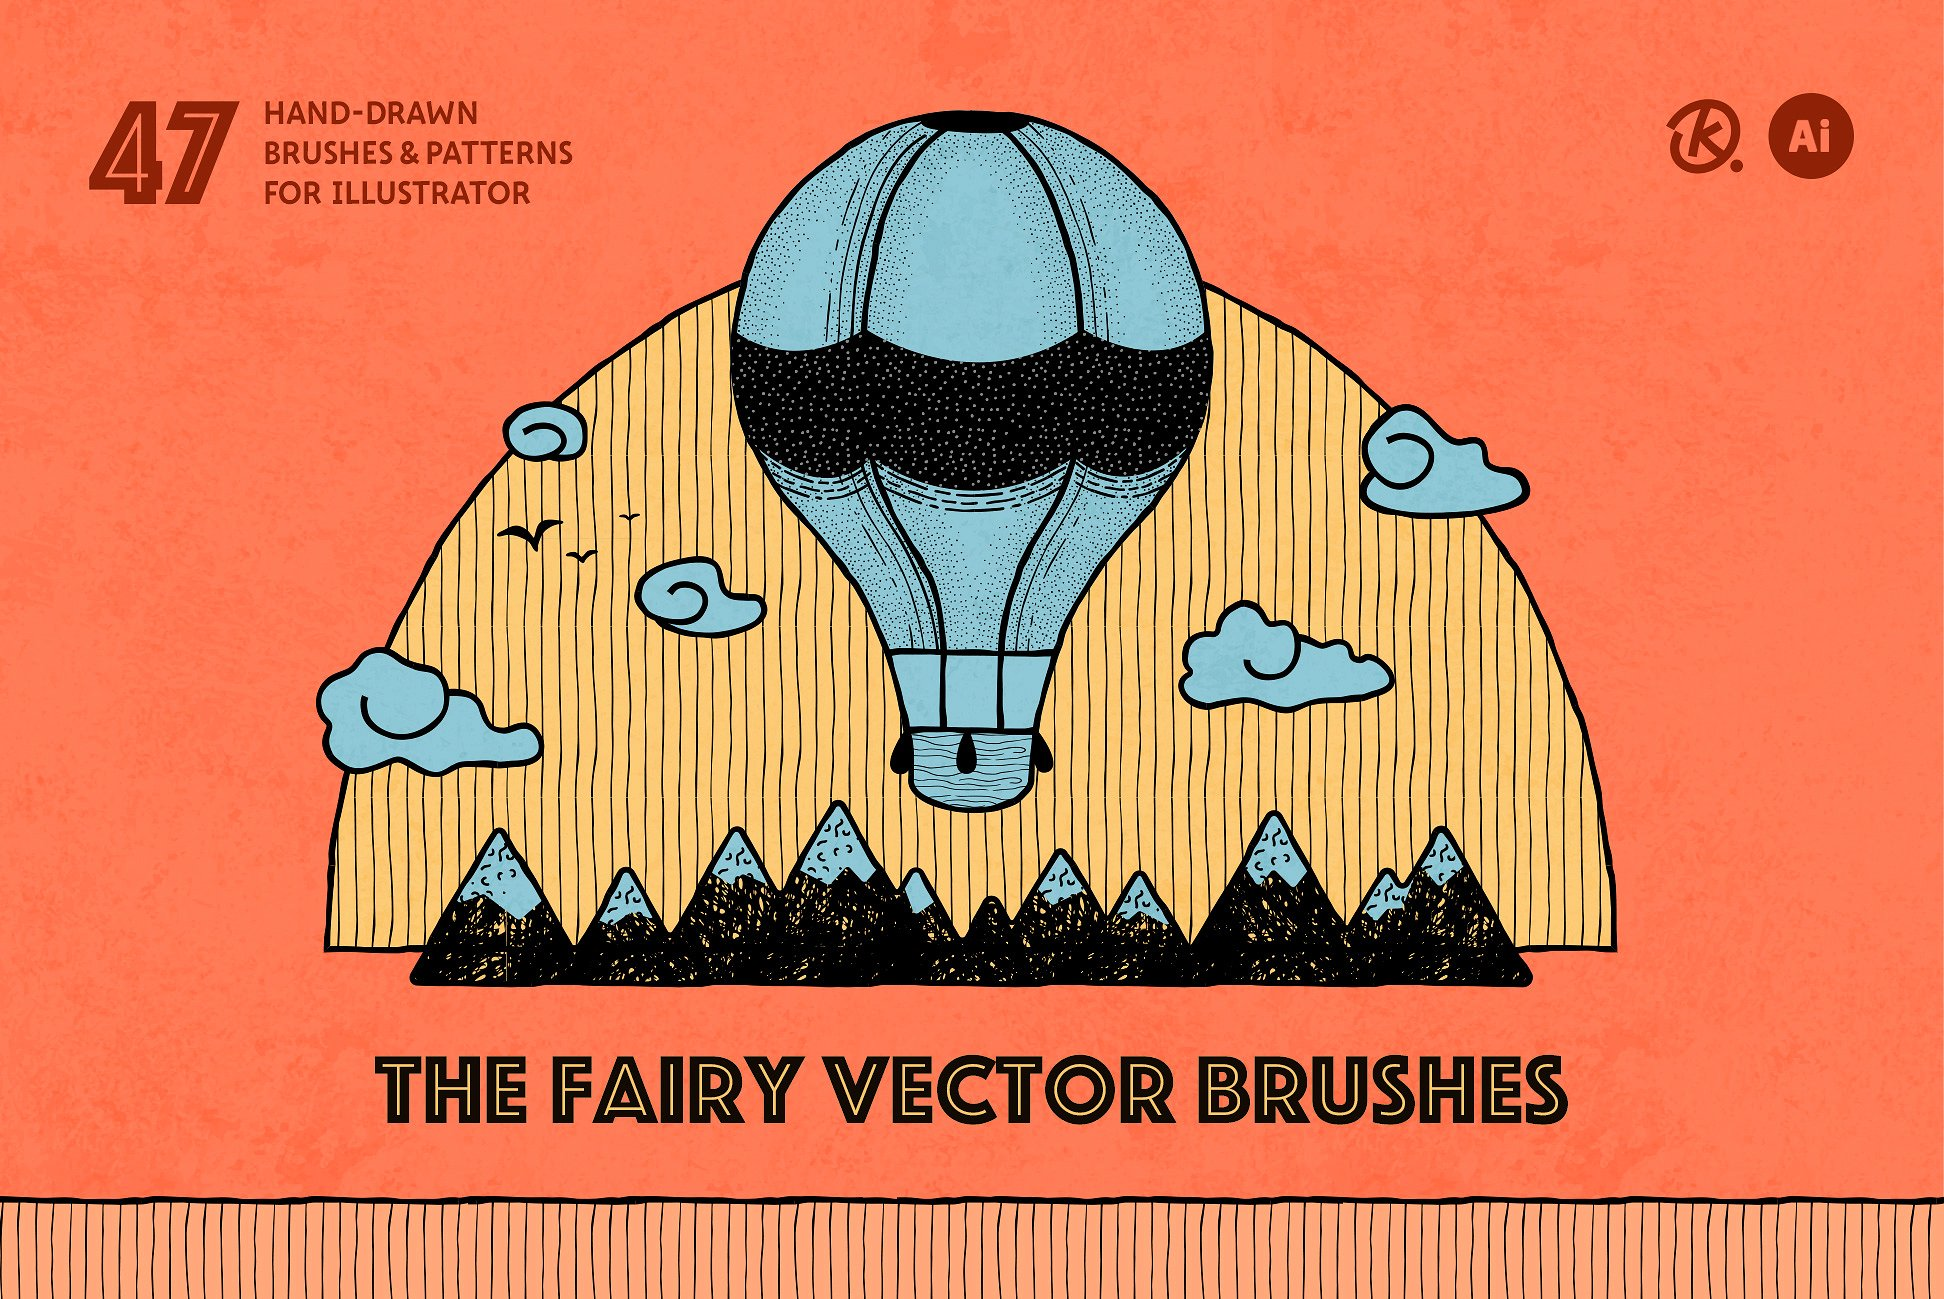 The Fairy Vector Brushes